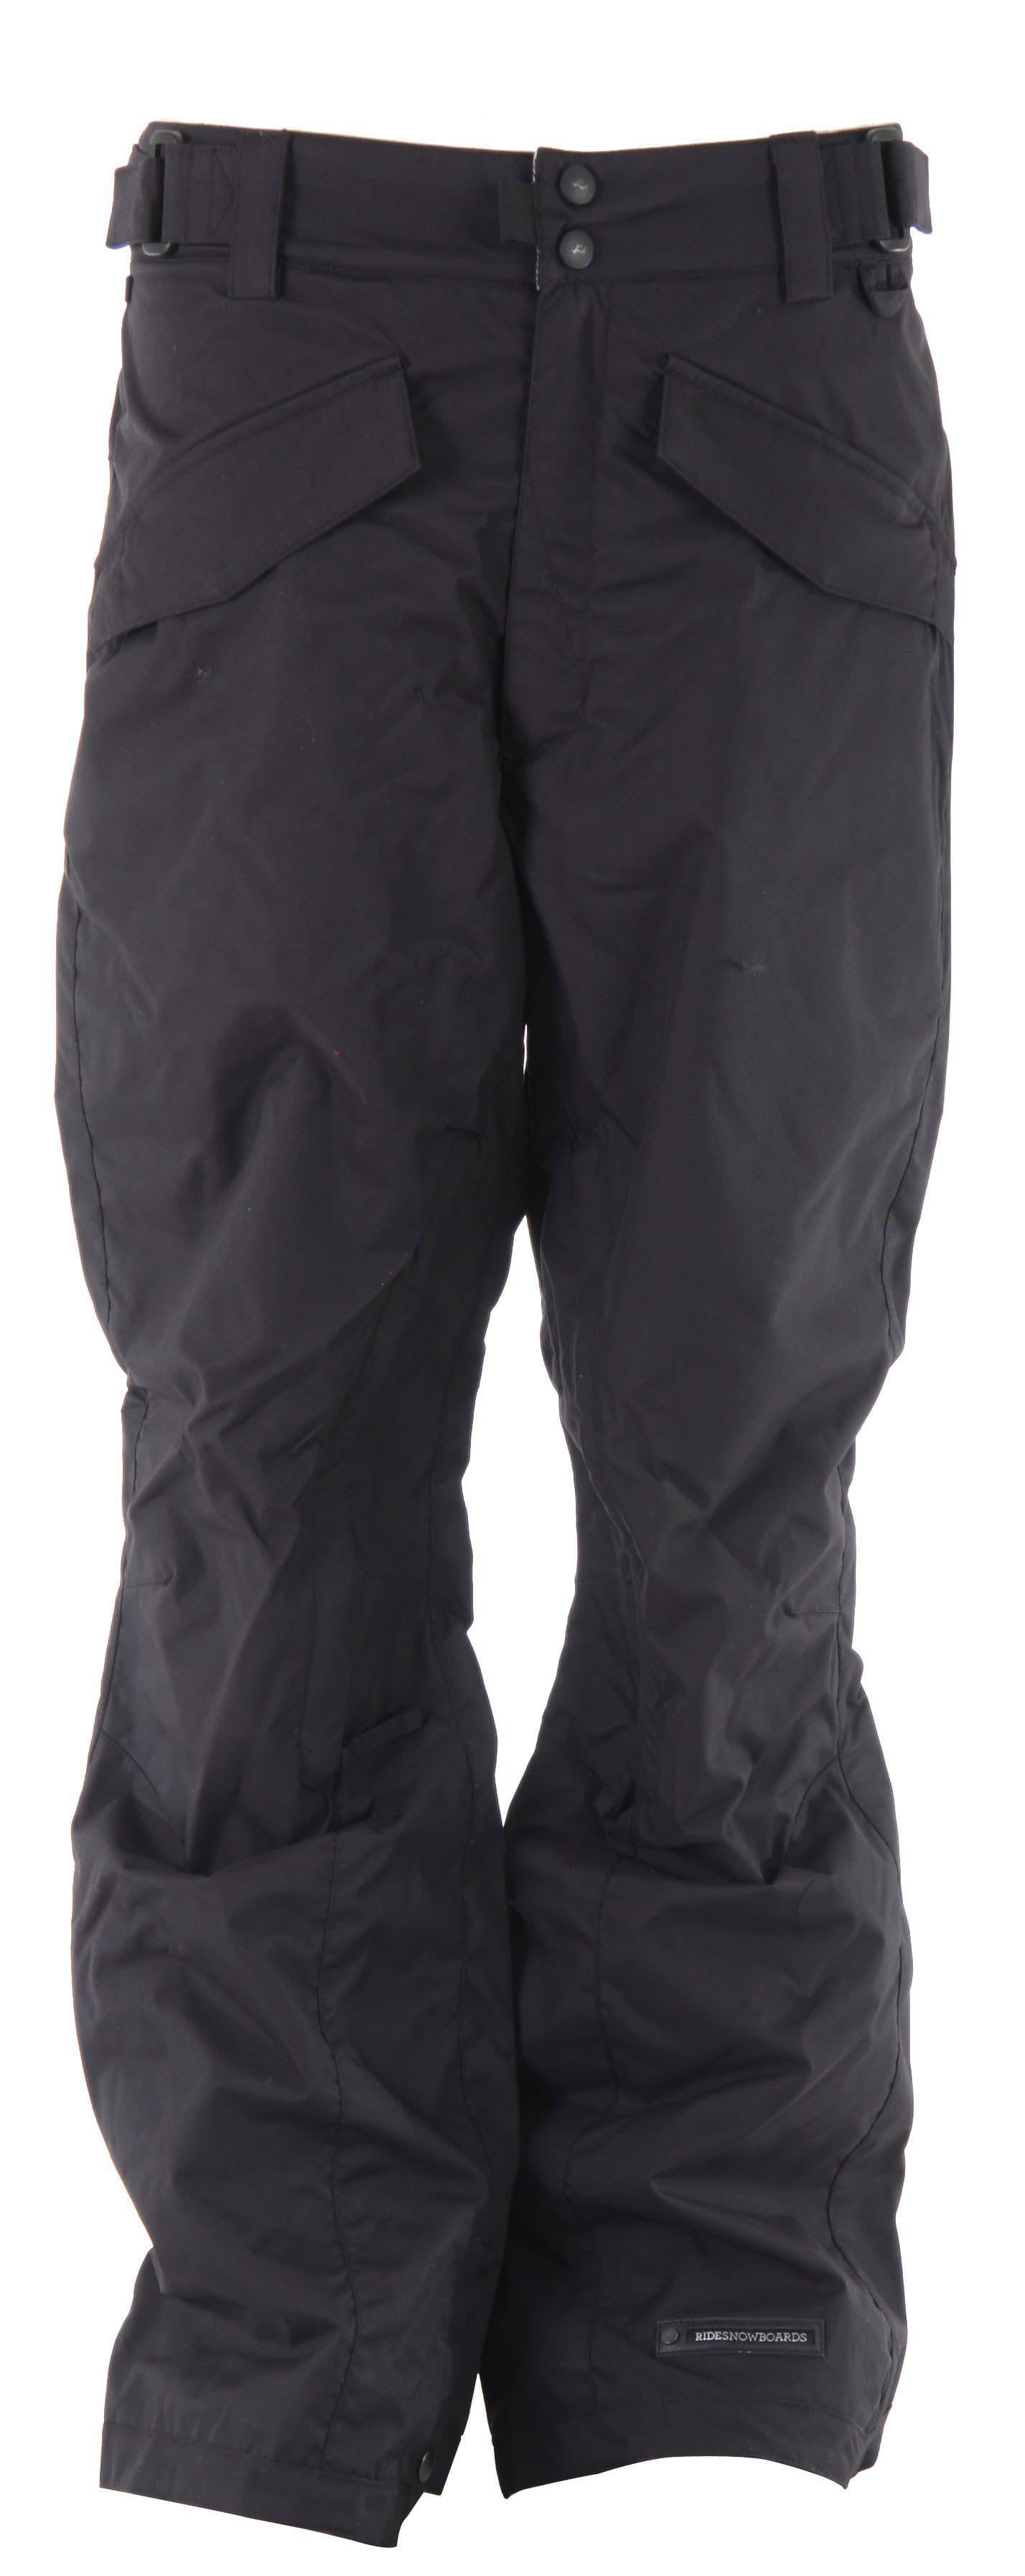 Shop for Ride Madrona Snowboard Pants Black - Men's